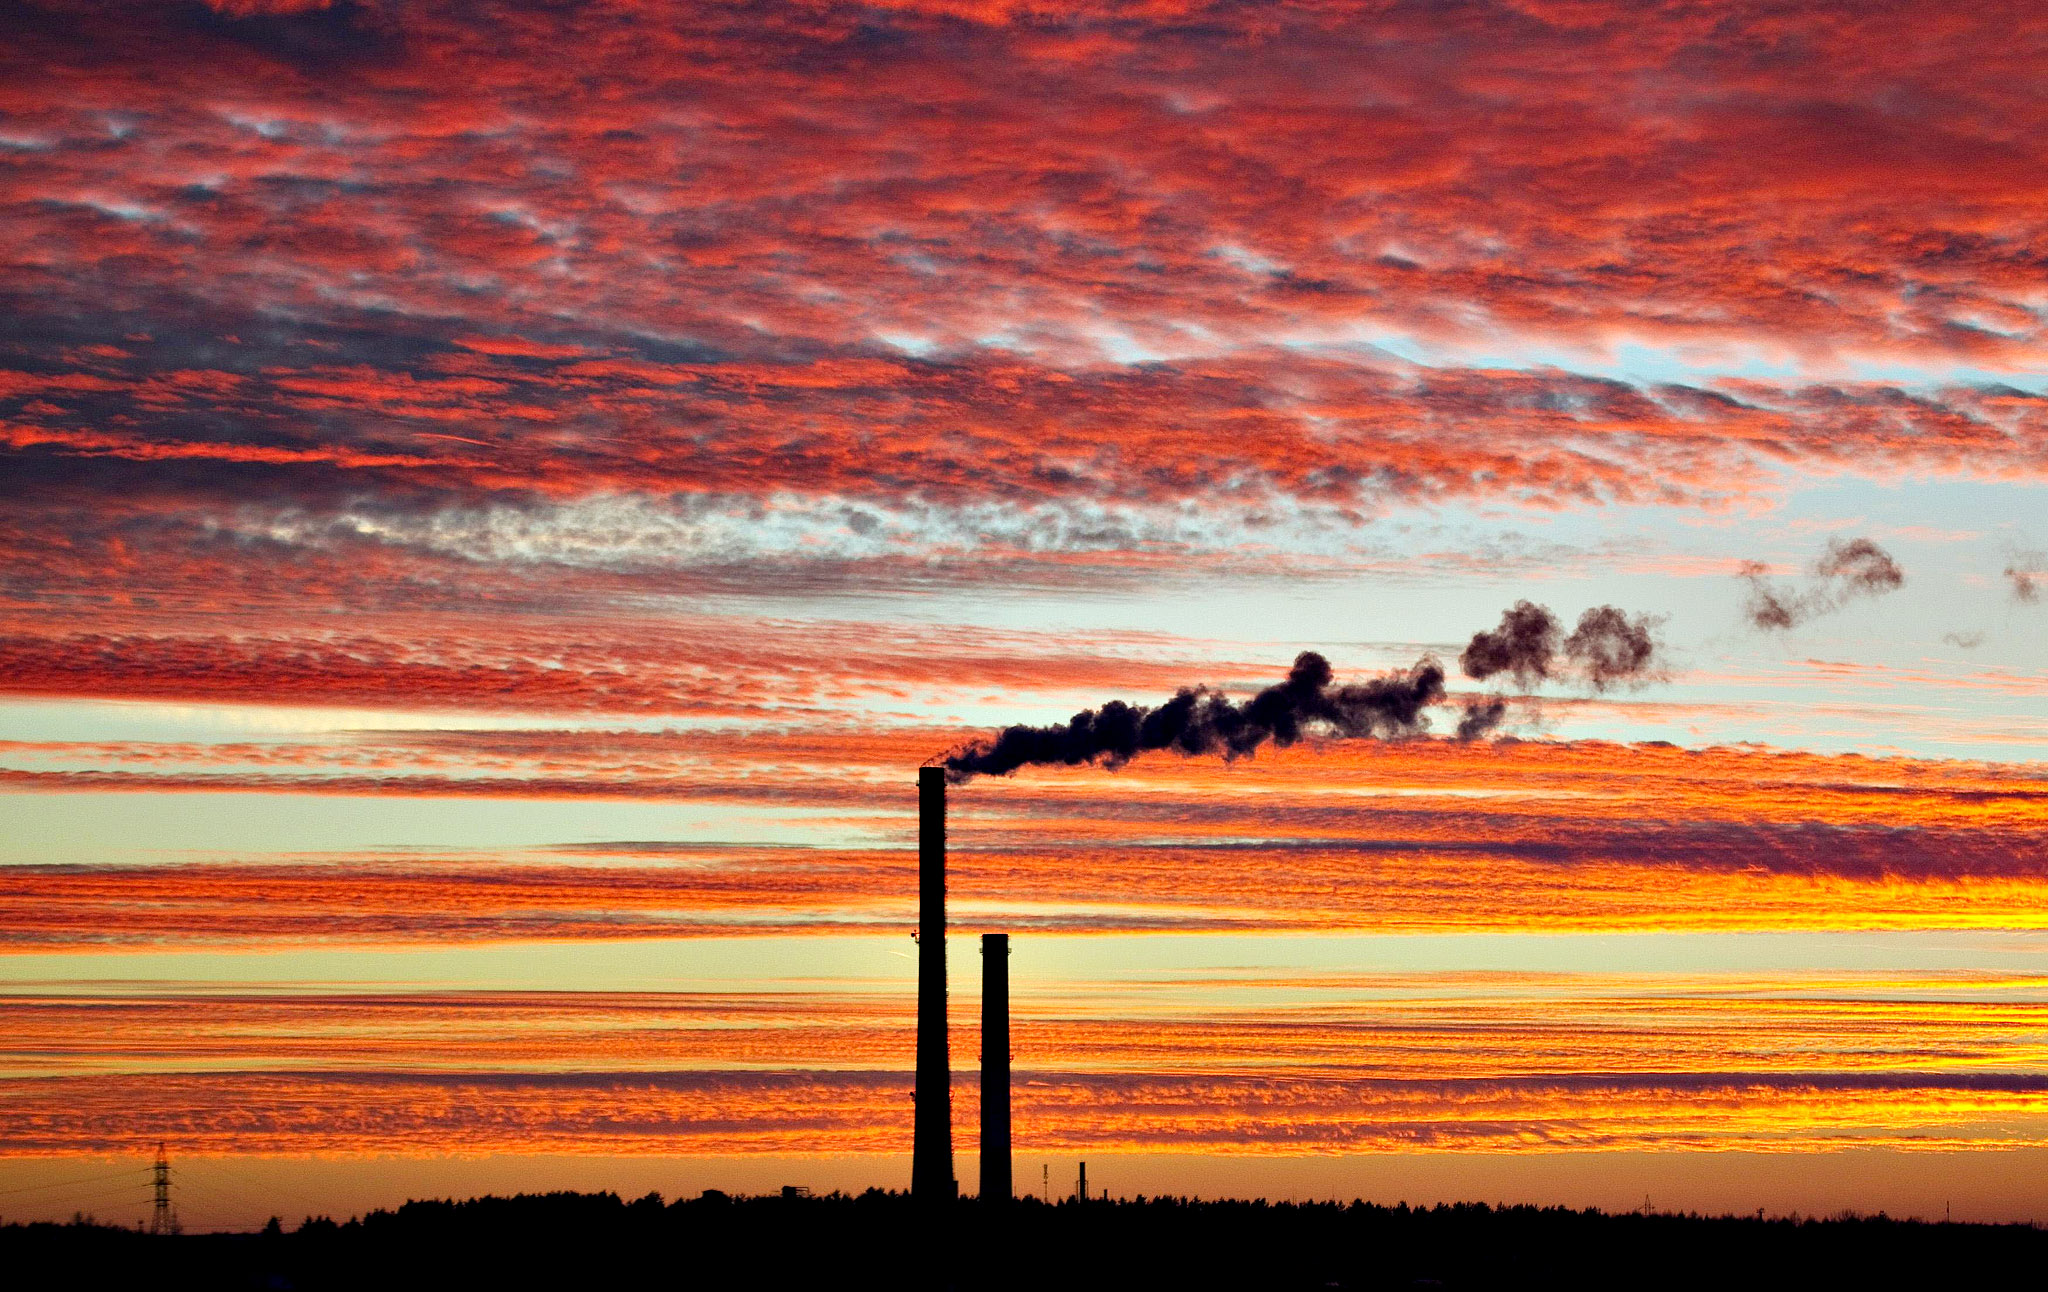 Smoke rises from the chimney stalk of a gas-fired power station after sunset on the outskirts of Minsk, November 18, 2013.